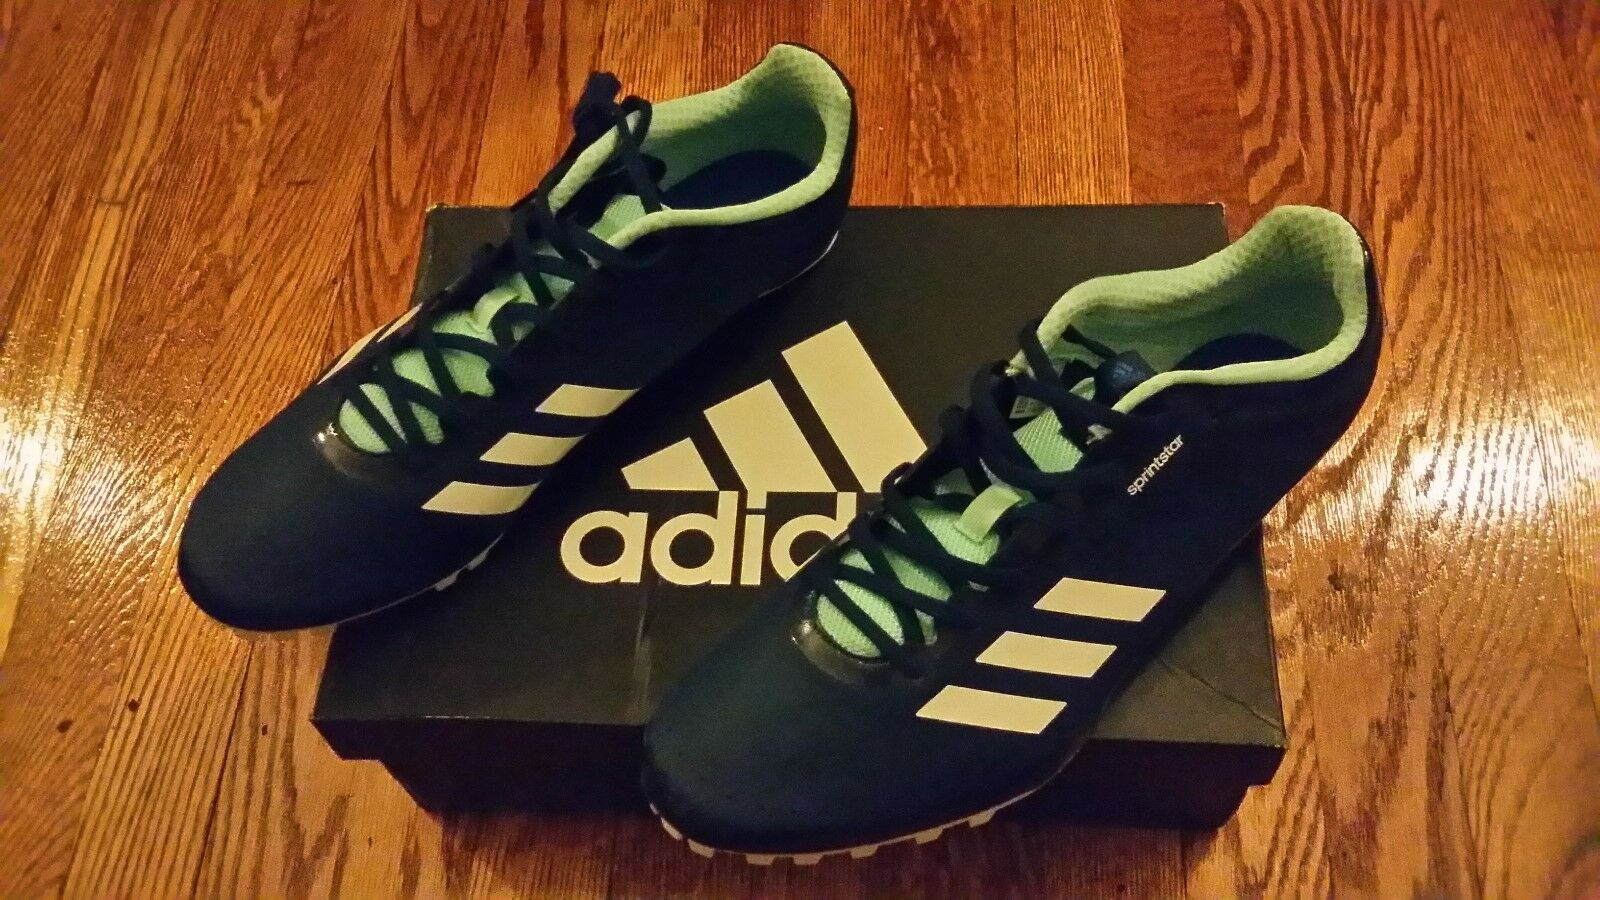 Adidas SprintStar Track and Field Sprint Spikes Sz12 NWT MSRP  79.99